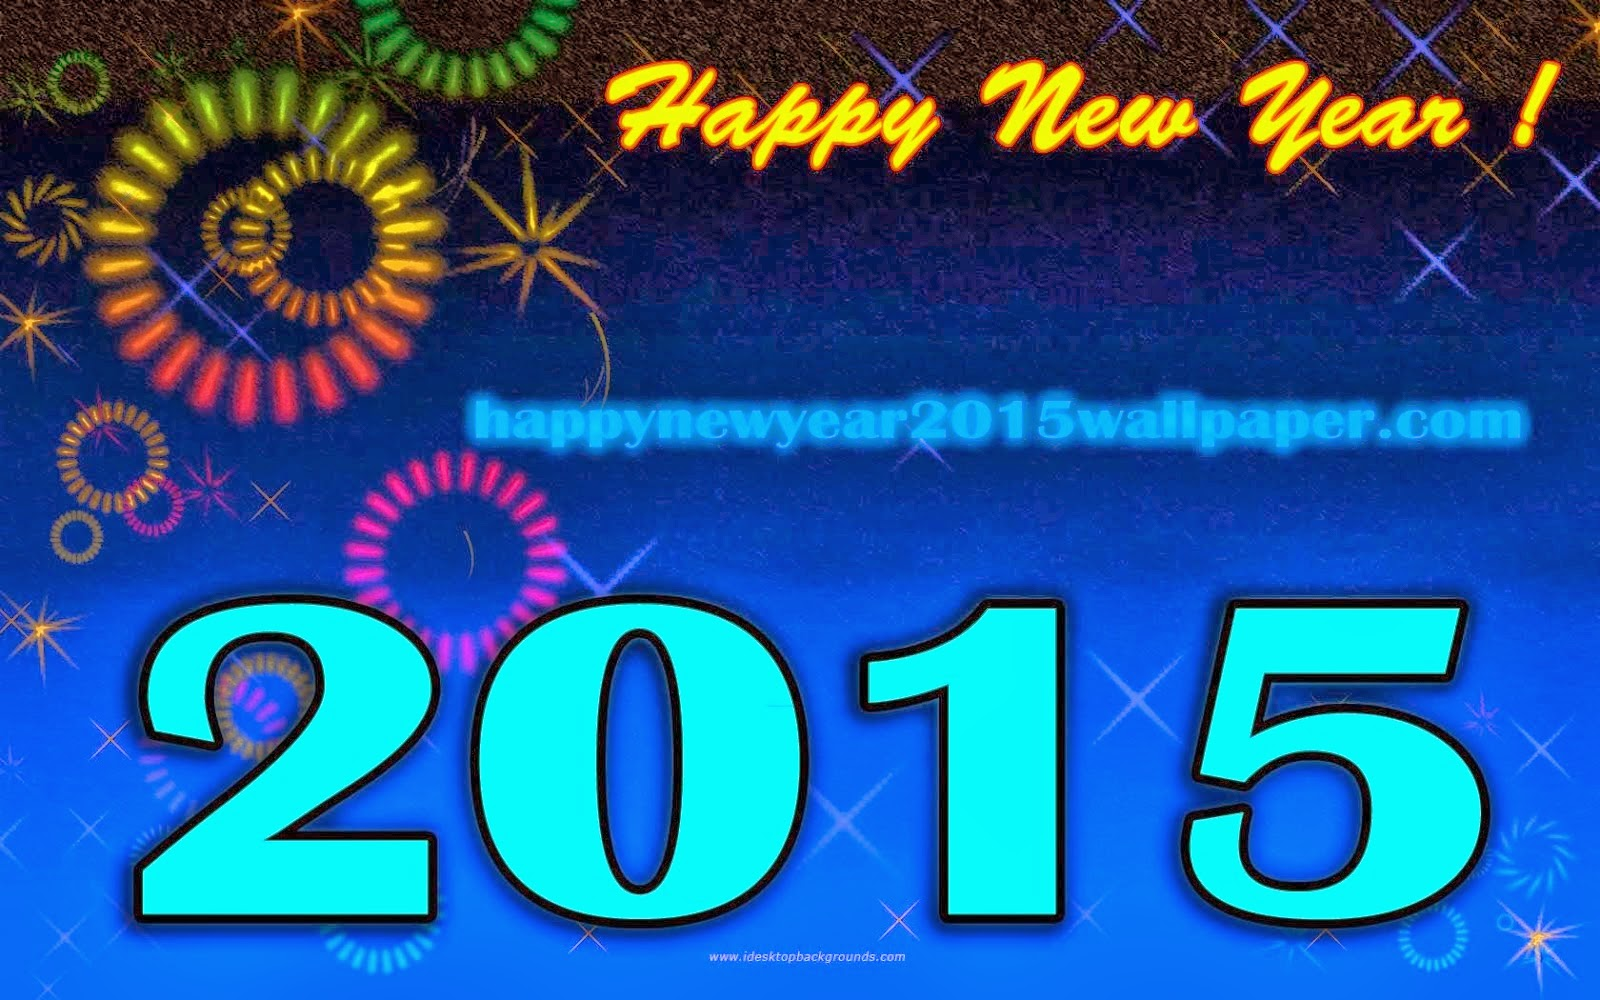 Happy New Year 2015 Wallpaper Free Downloading, Happy New Year Photos